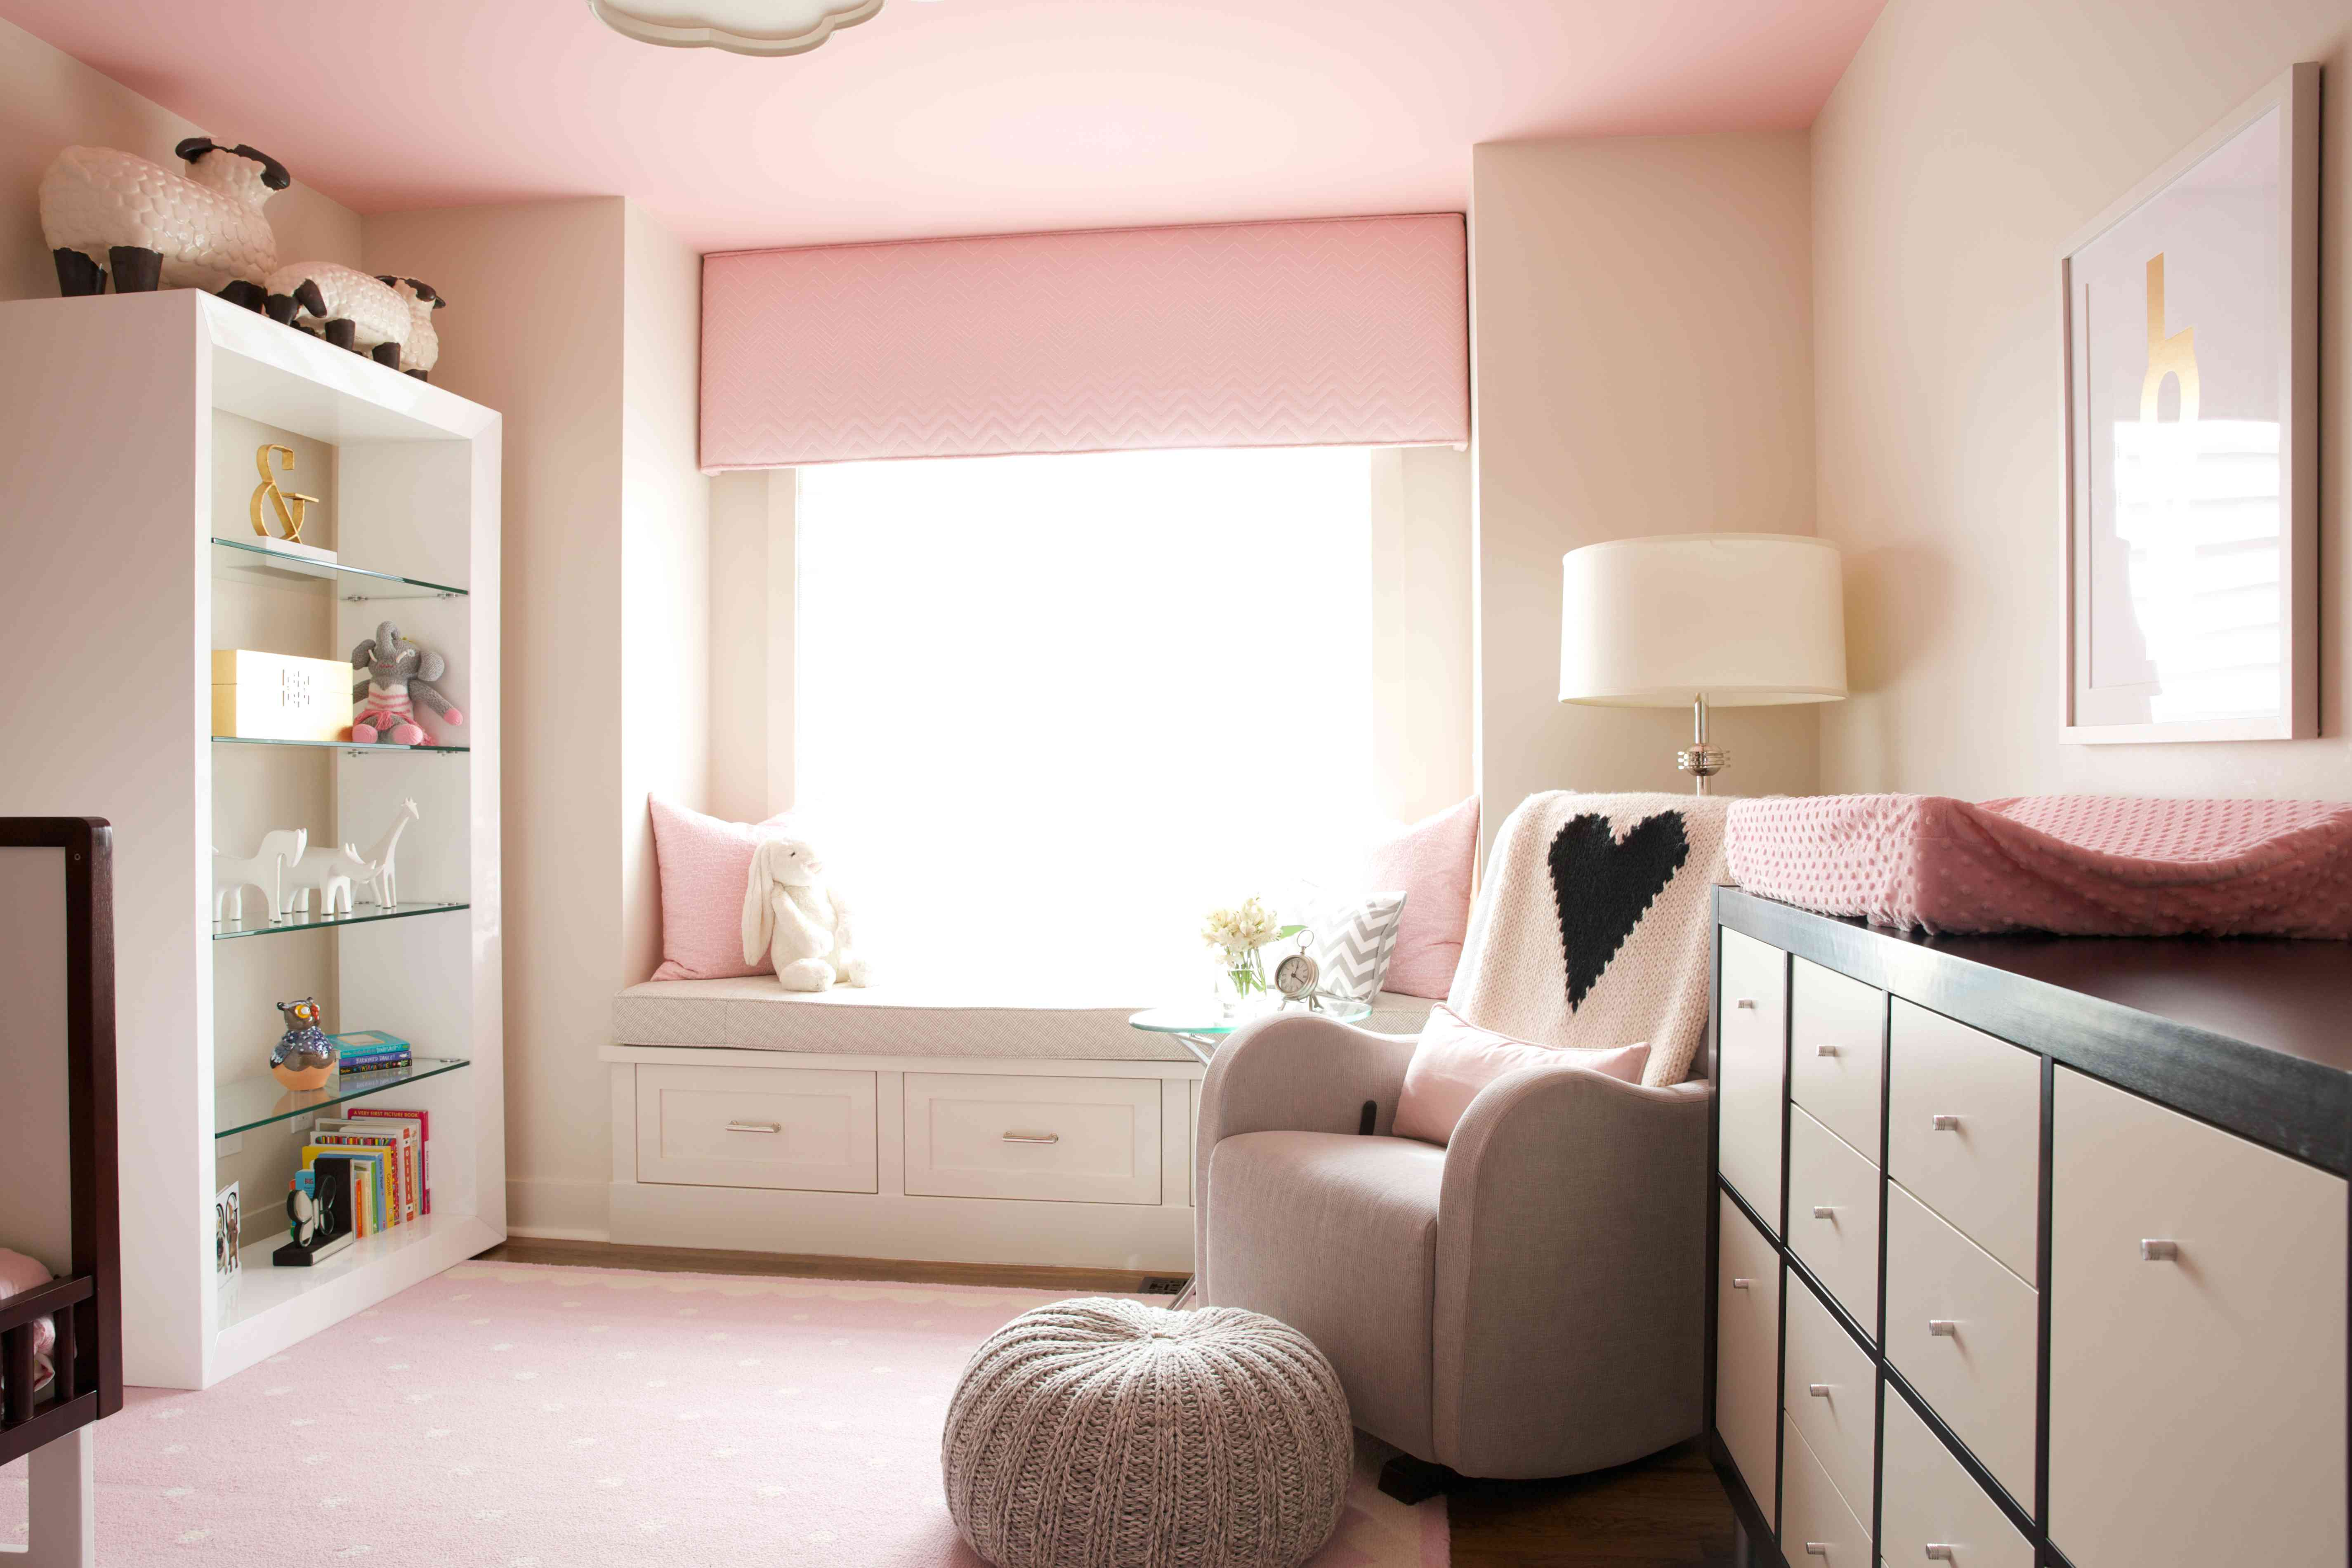 Girls bedroom with a window bench